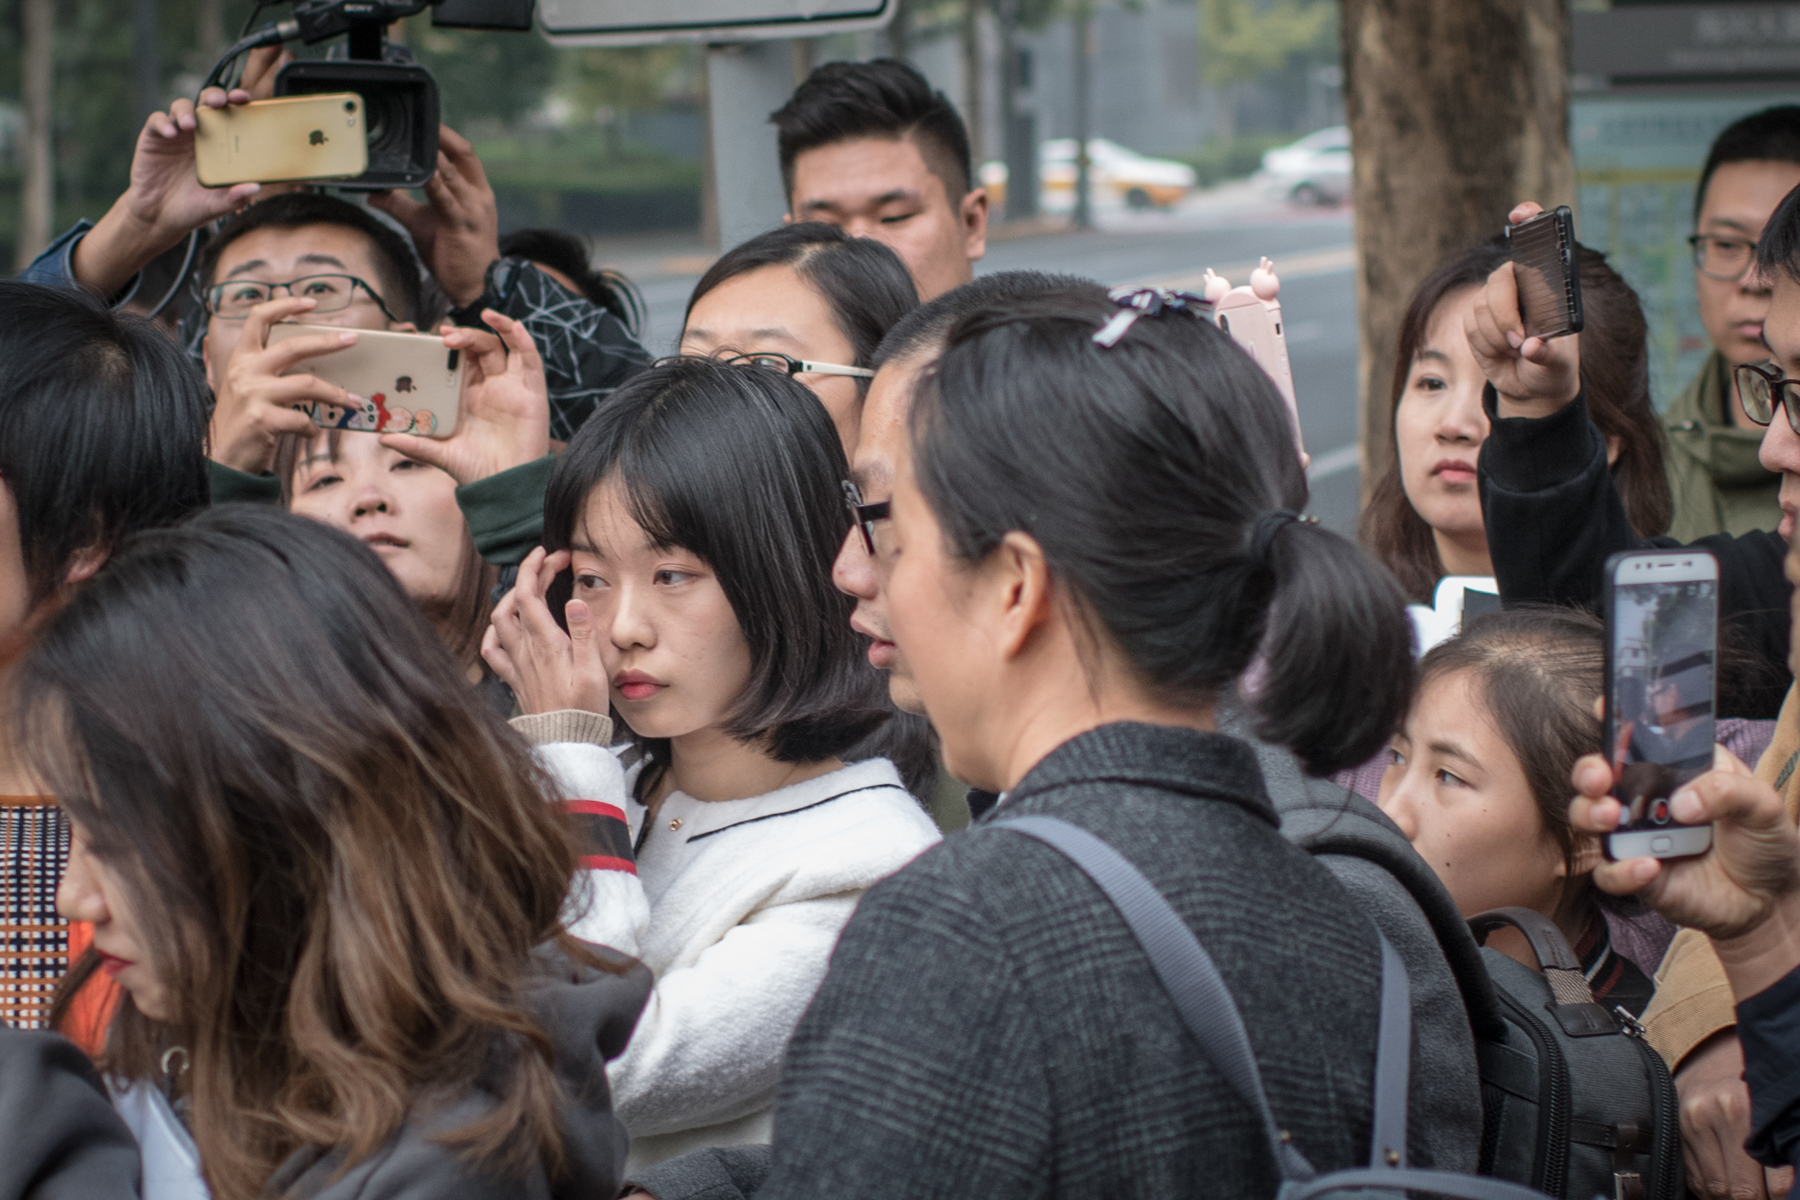 Zhou Xiaoxuan, who accused prominent TV host Zhu Jun of sexual assault, leaves court after a pretrial evidence exchange hearing in the suit Zhu filed against her for defamation, in Beijing, October 25, 2018. In July, Zhou disclosed on her WeChat account that Zhu had groped and forcibly kissed her four years earlier when she was an intern at his television station. Her post went viral.